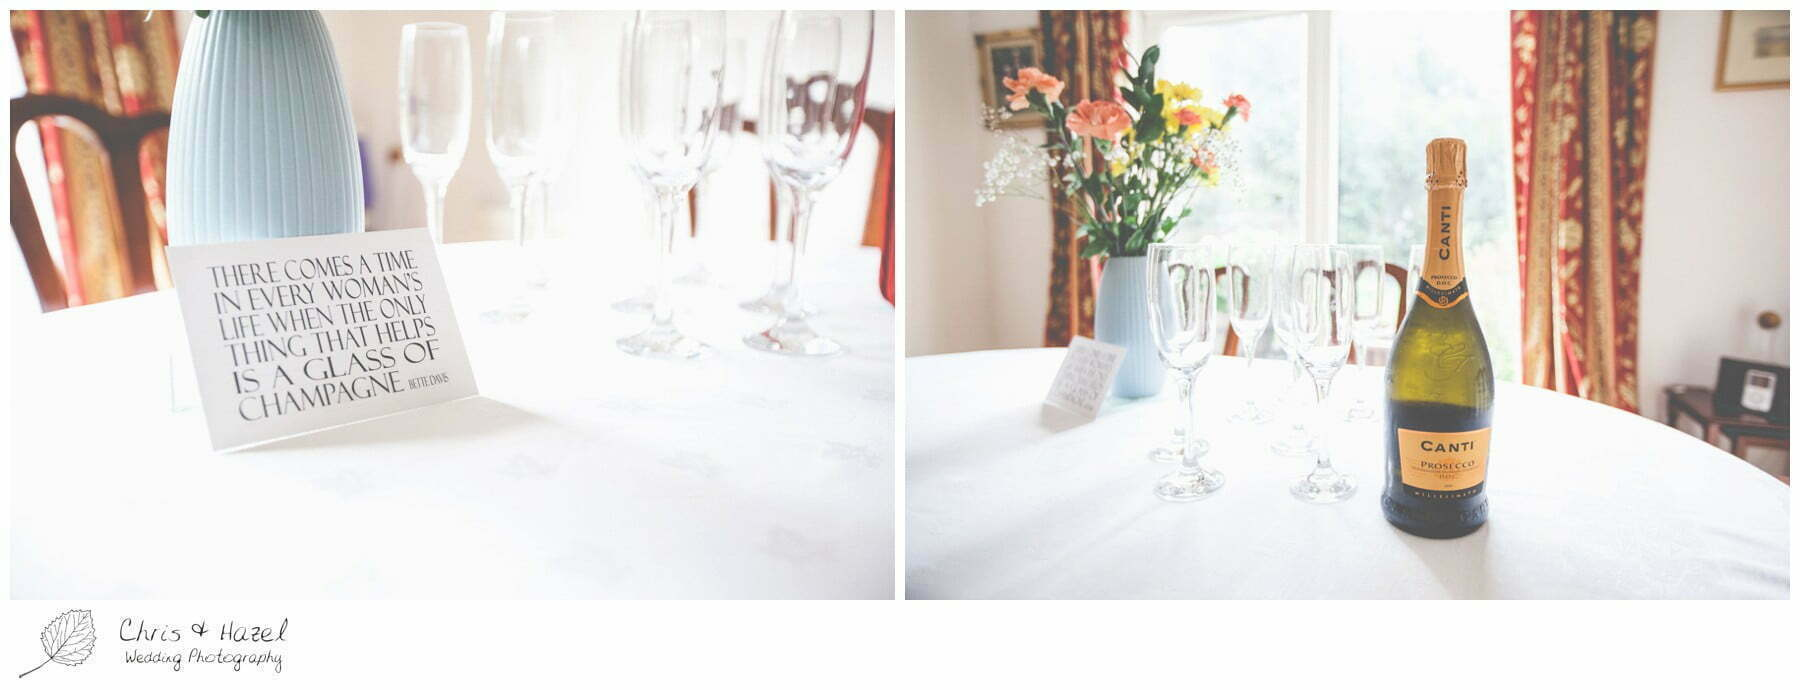 wedding flowers, prosecco, Preston Wedding Photographer, preston, wedding, photographer, Bartle Hall Wedding Photographer, battle hall, Lancashire wedding photographer, Chris and Hazel Wedding Photography, Tom Goulding, Micha Waite, Micha Goulding,